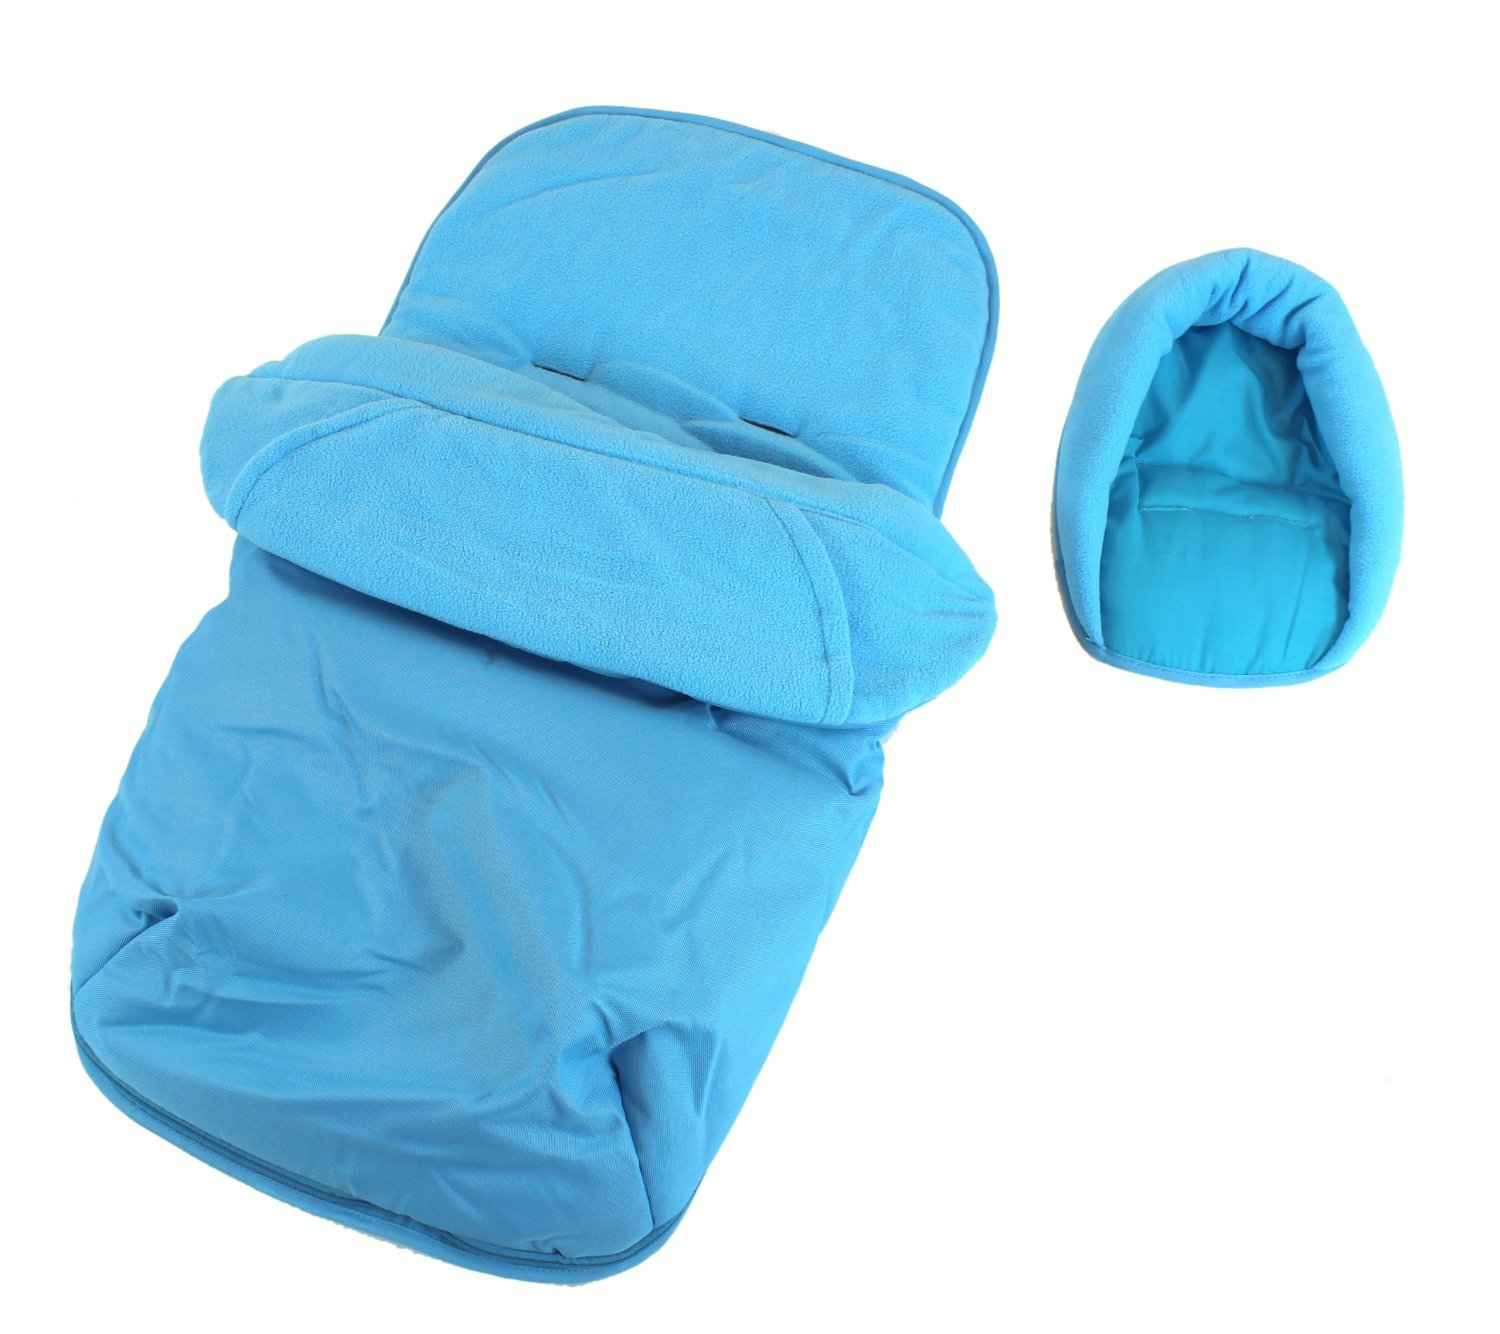 3 In 1 Luxury Padded With Pouches Footmuff Liner And Baby Head Hugger Fits Any Stroller Pram Or Buggy - Ocean Baby Travel®